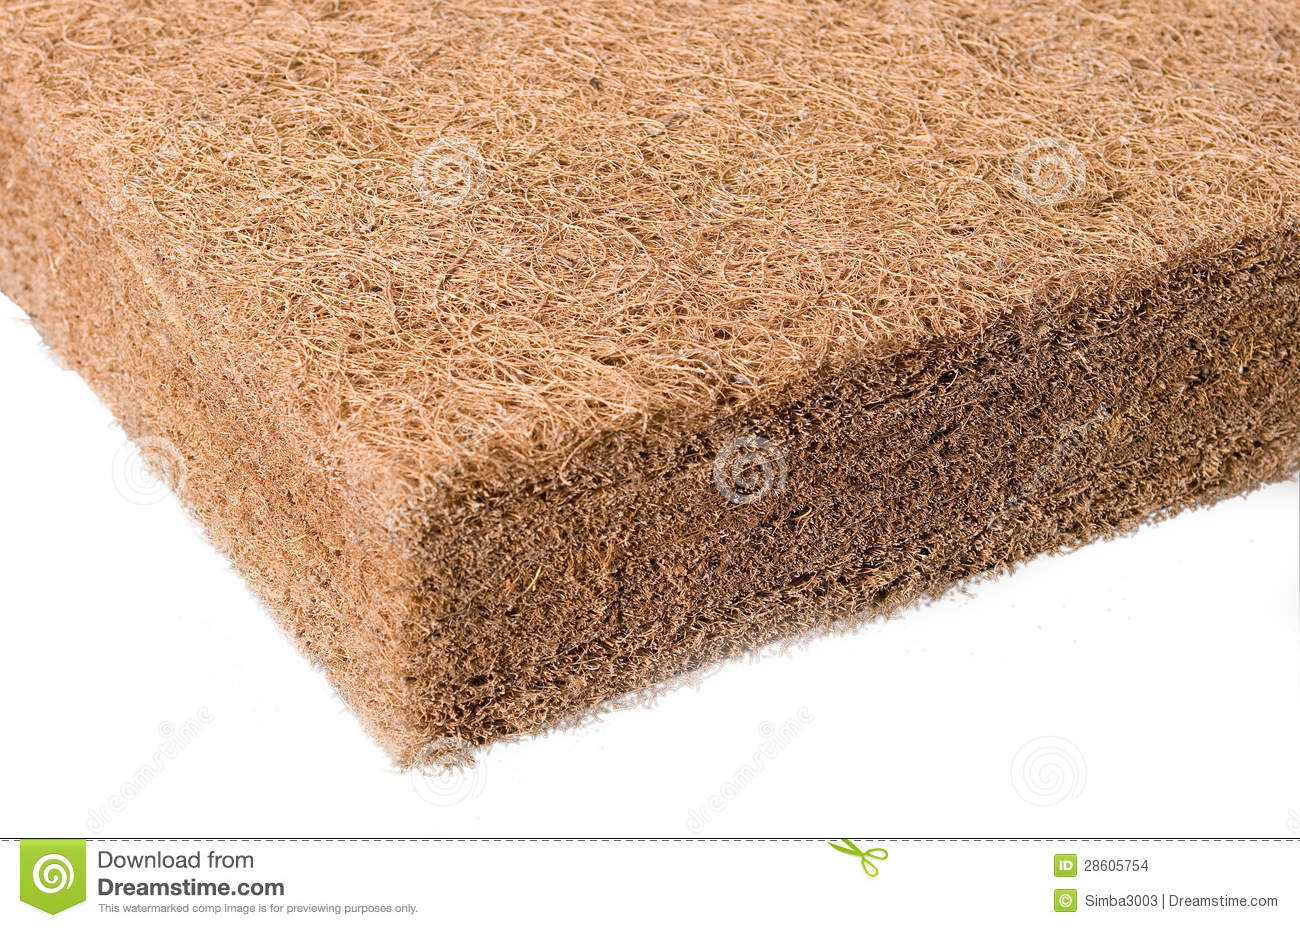 Coir Or Coconut Husk Fiber Stock Photo Image Of Natural